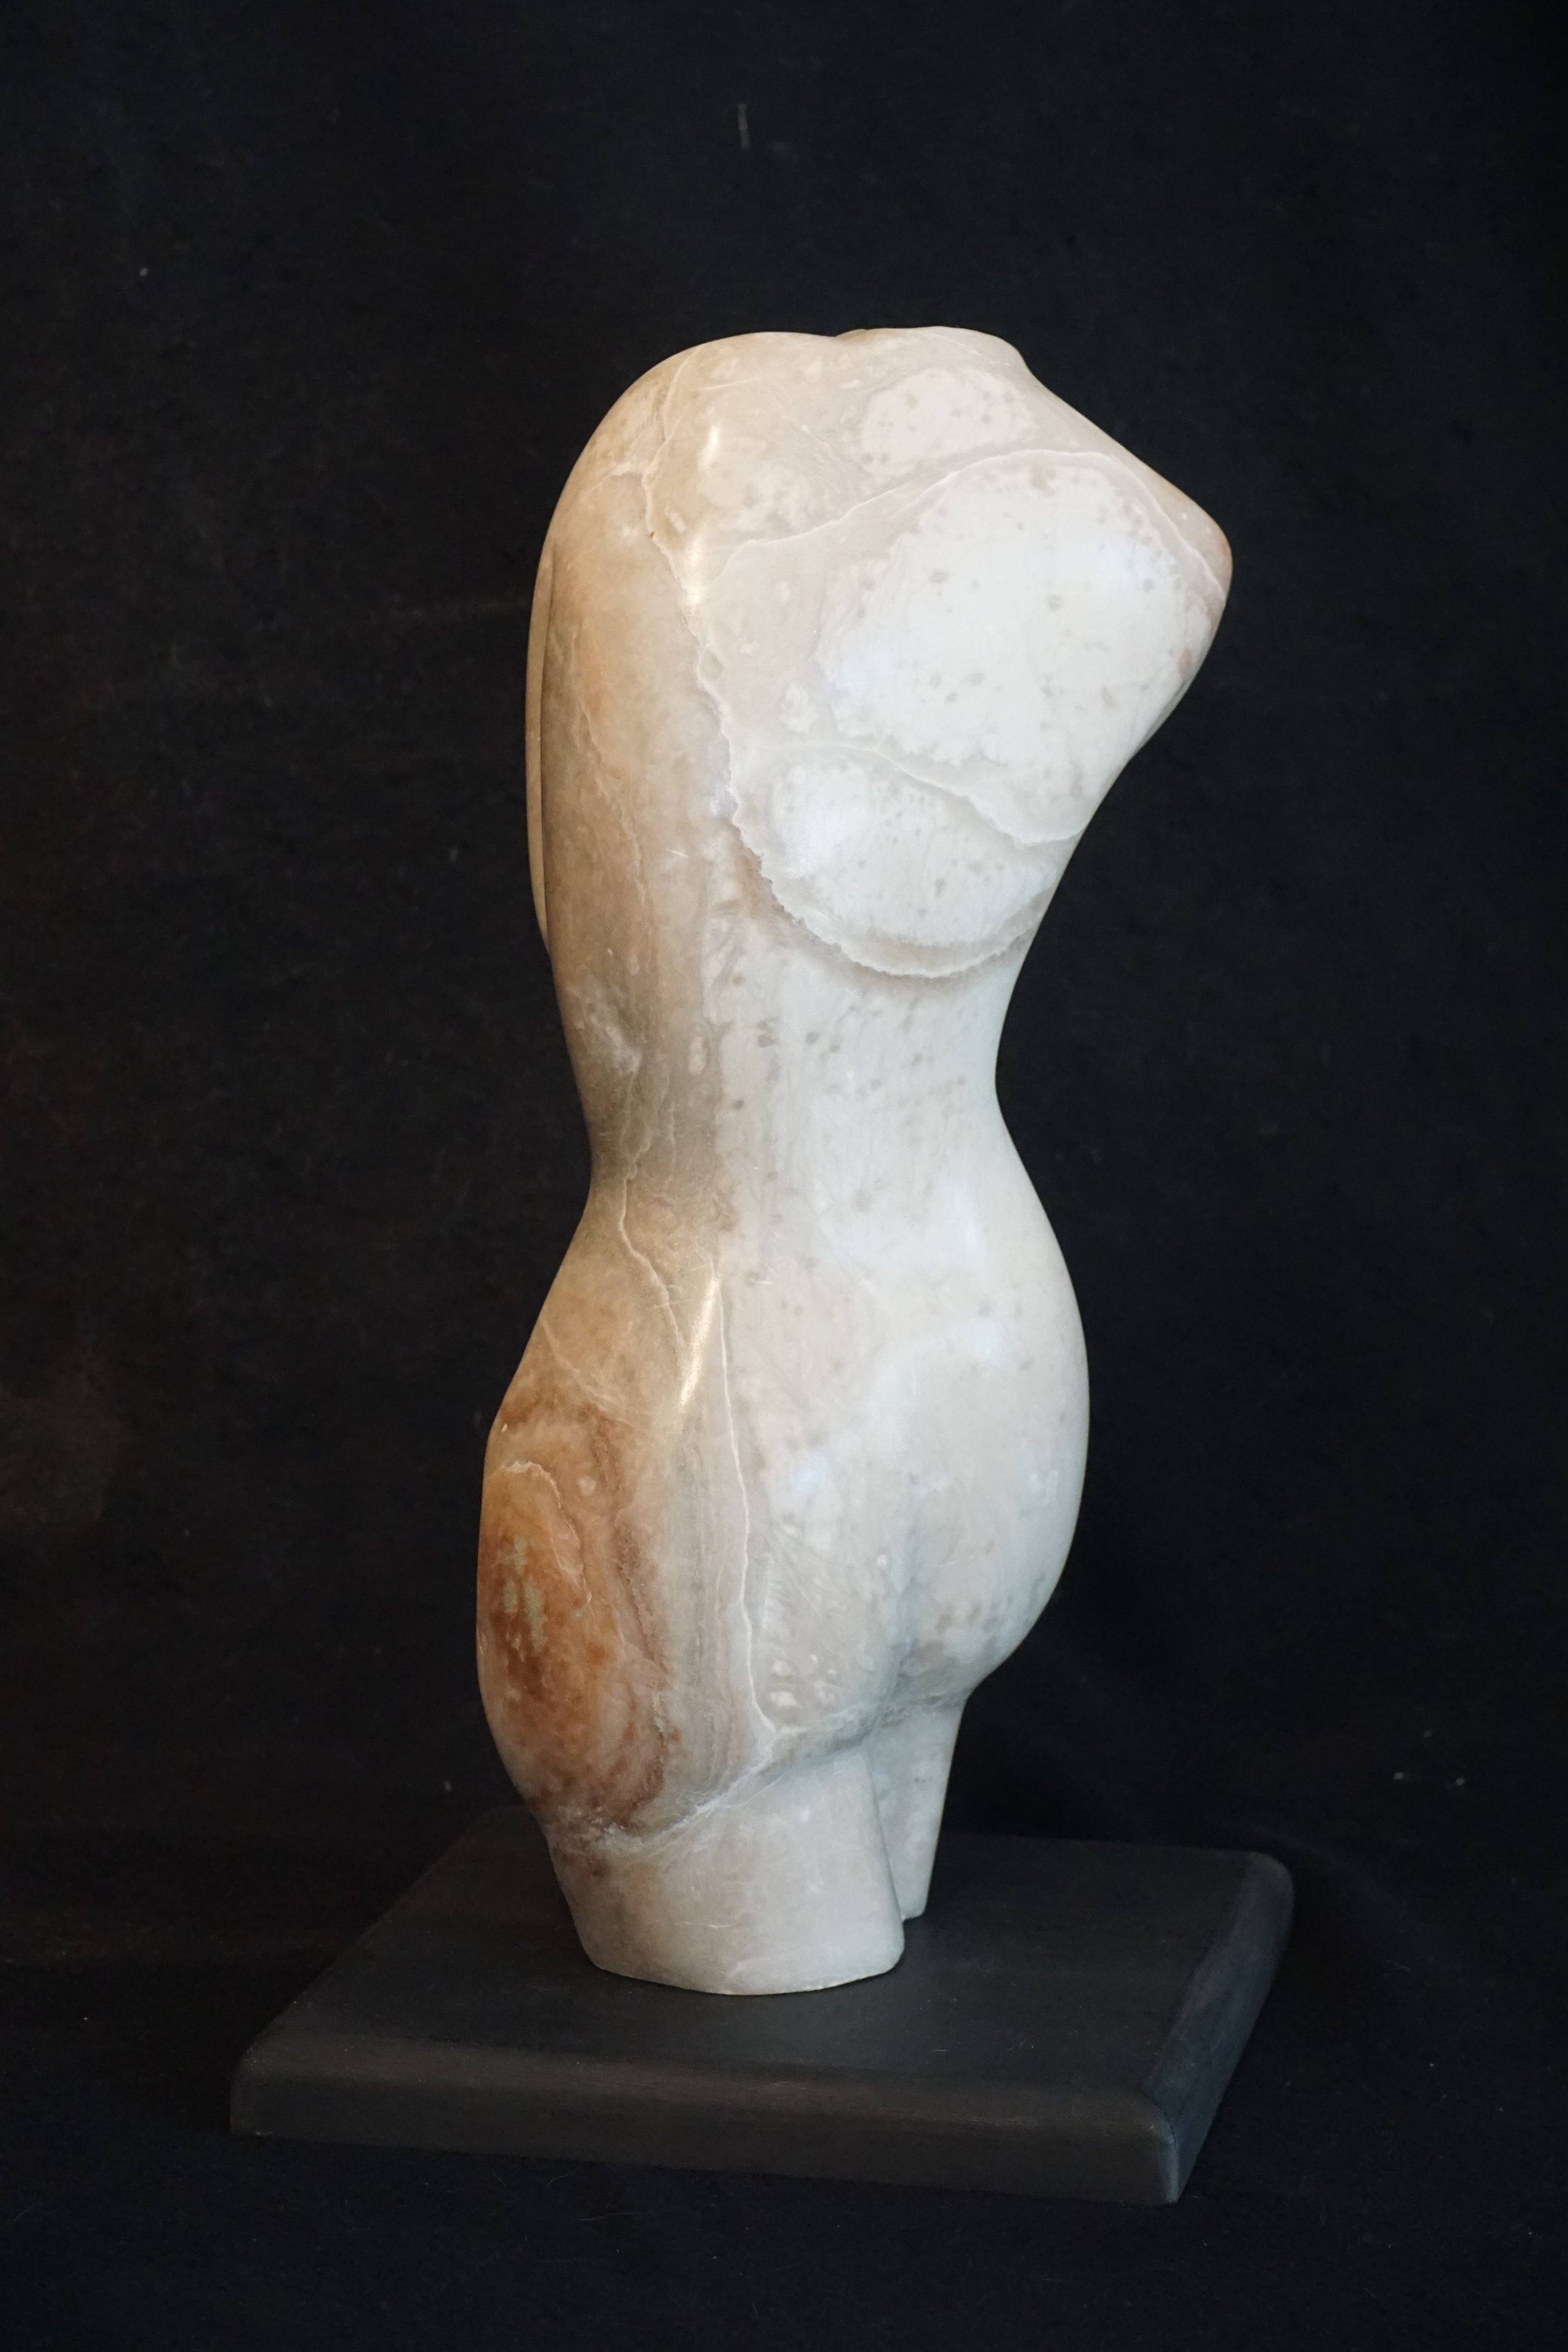 """Shy?"". Alabaster stone. 18"" high. Completed in June 2017."